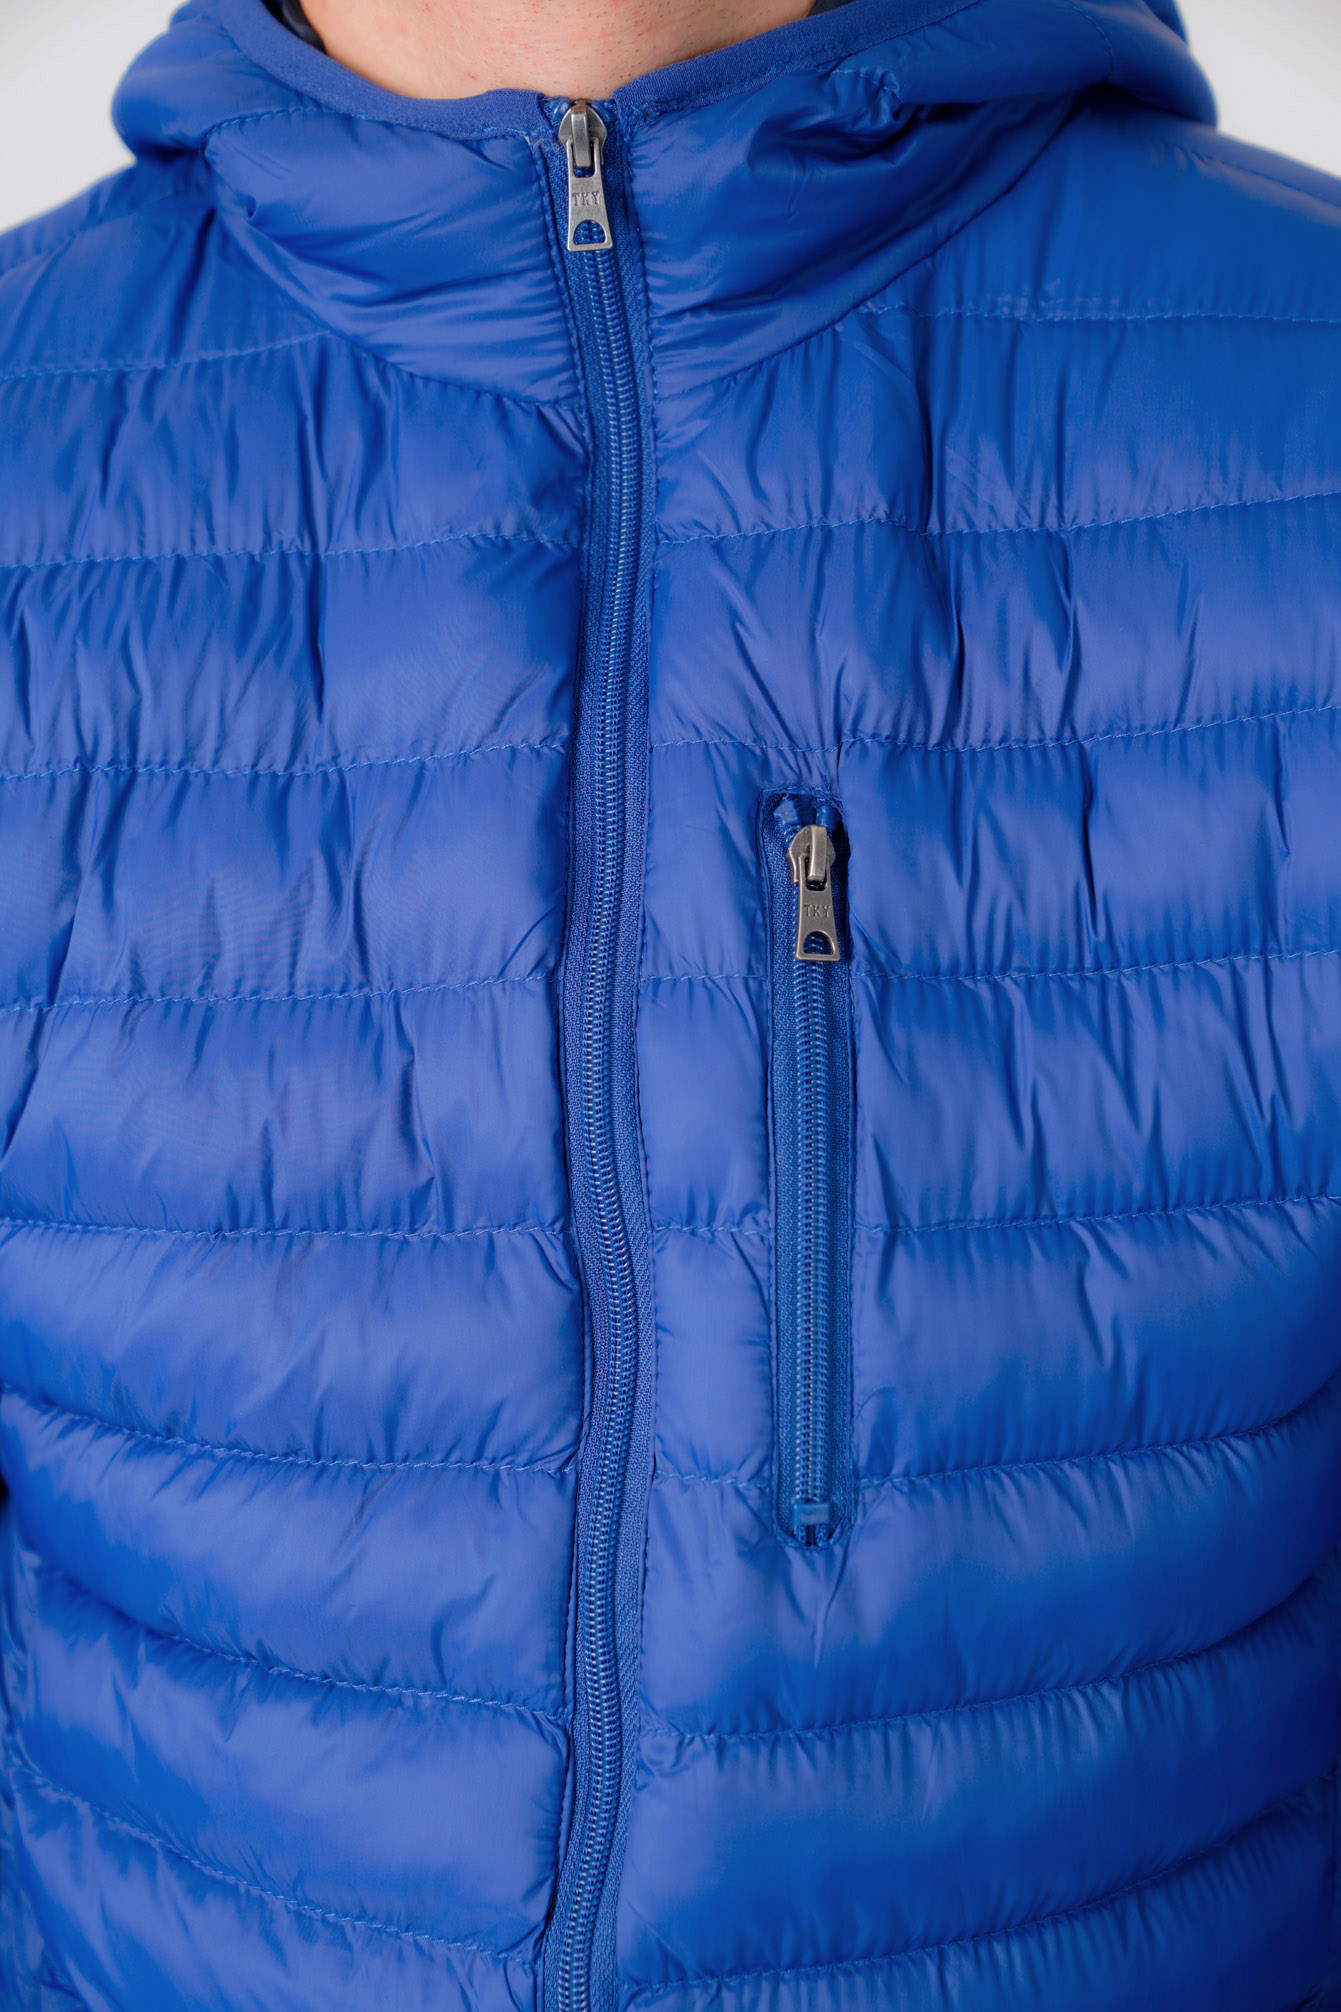 Tokyo Laundry Mens Vizzini Quilted Puffer Jacket Hooded Puffa Bubble Coat Padded